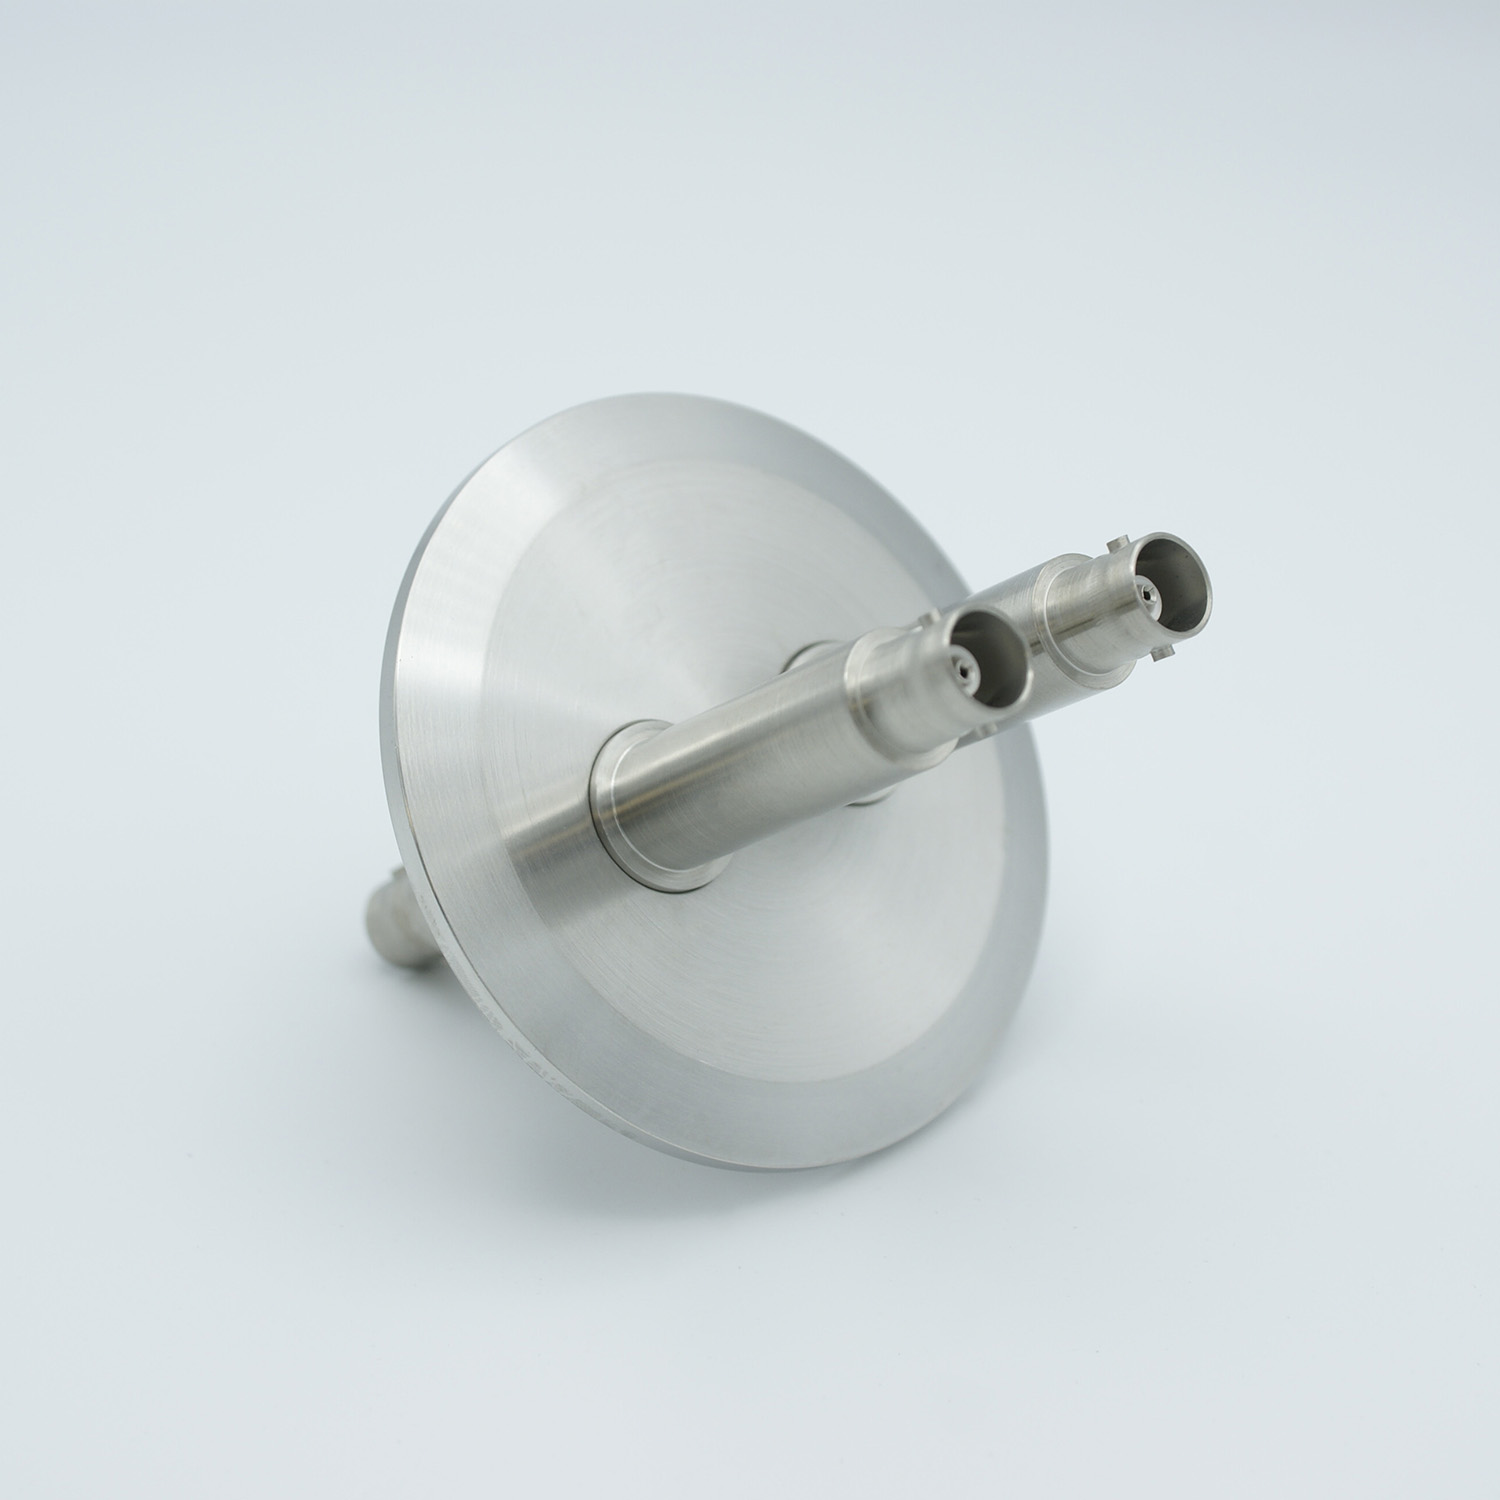 2 of grounded shield, double ended BNC feedthrough 500V 3 Amp, air side connector included, DN40KF flange